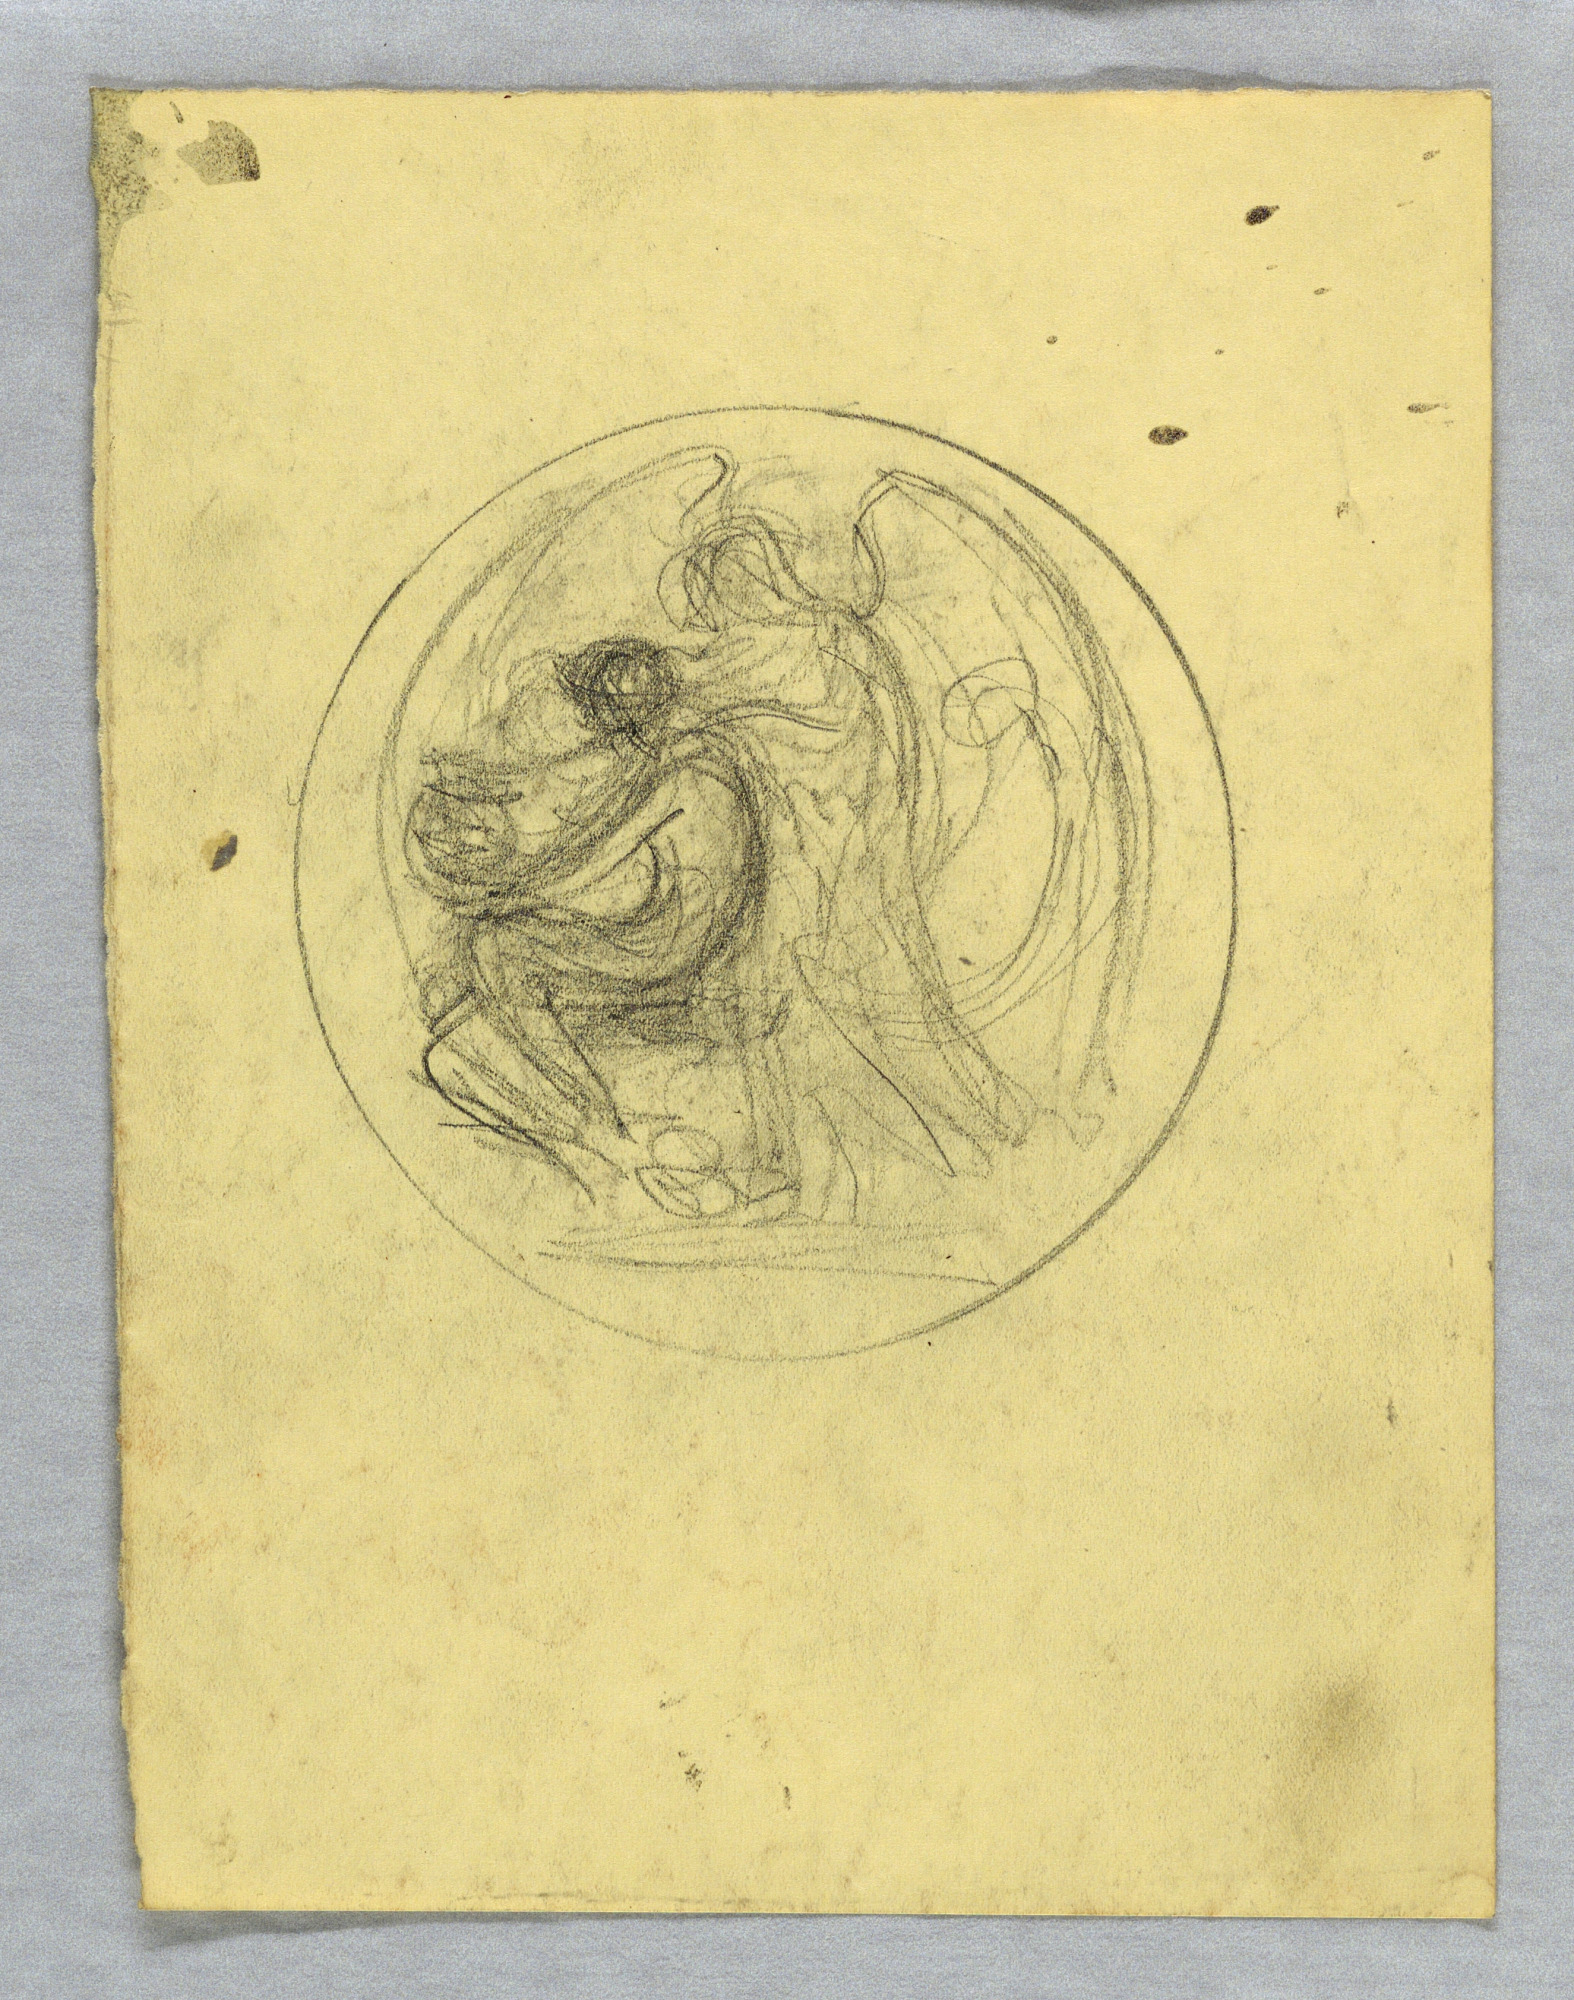 Sketches for Obverse of Michael Friedsam Medal for Industrial Art